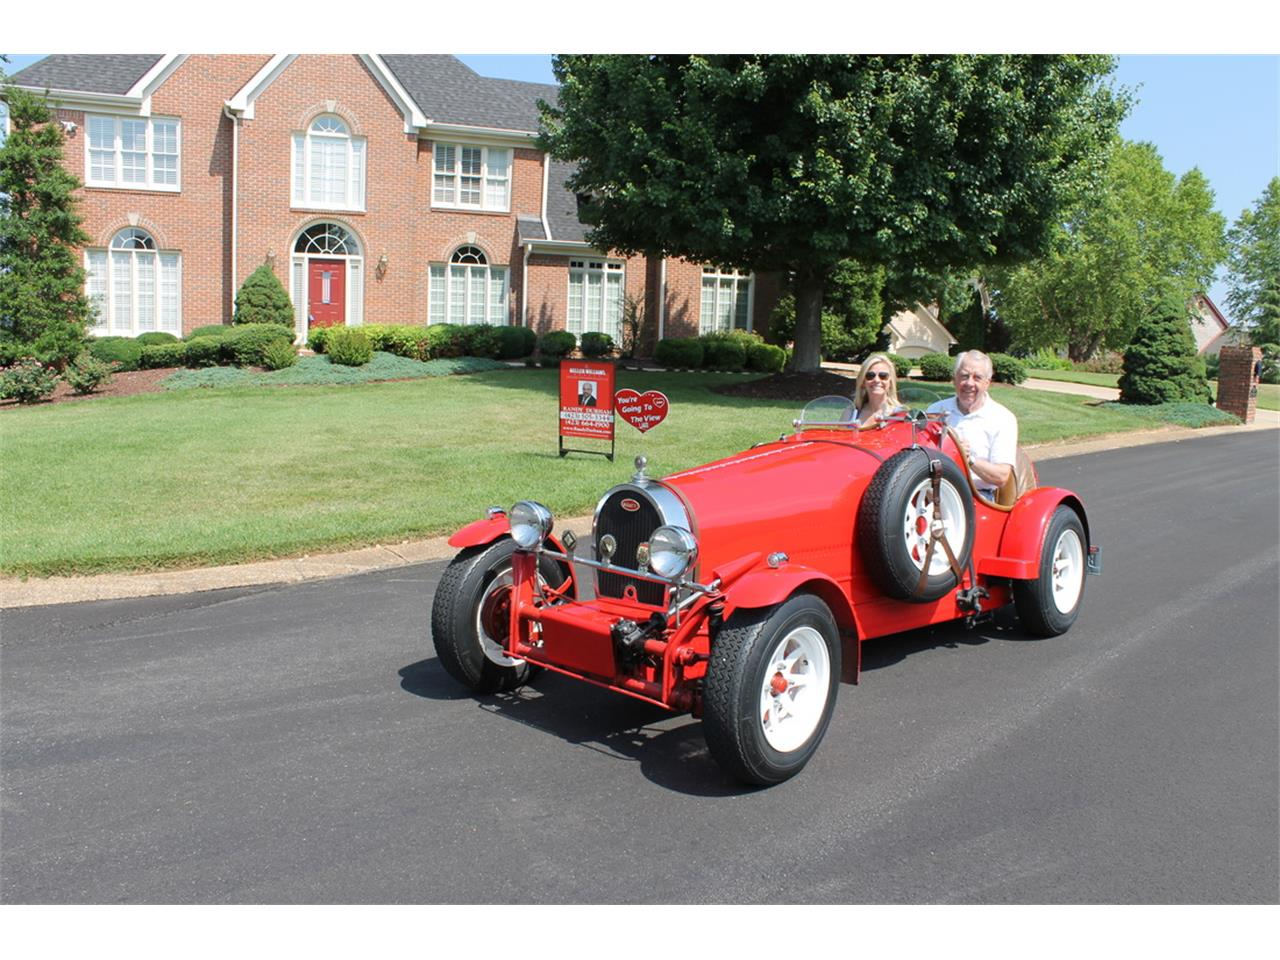 Large Picture of 1927 Bugatti Replica located in Chattanooga Tennessee - $24,900.00 - MEIY